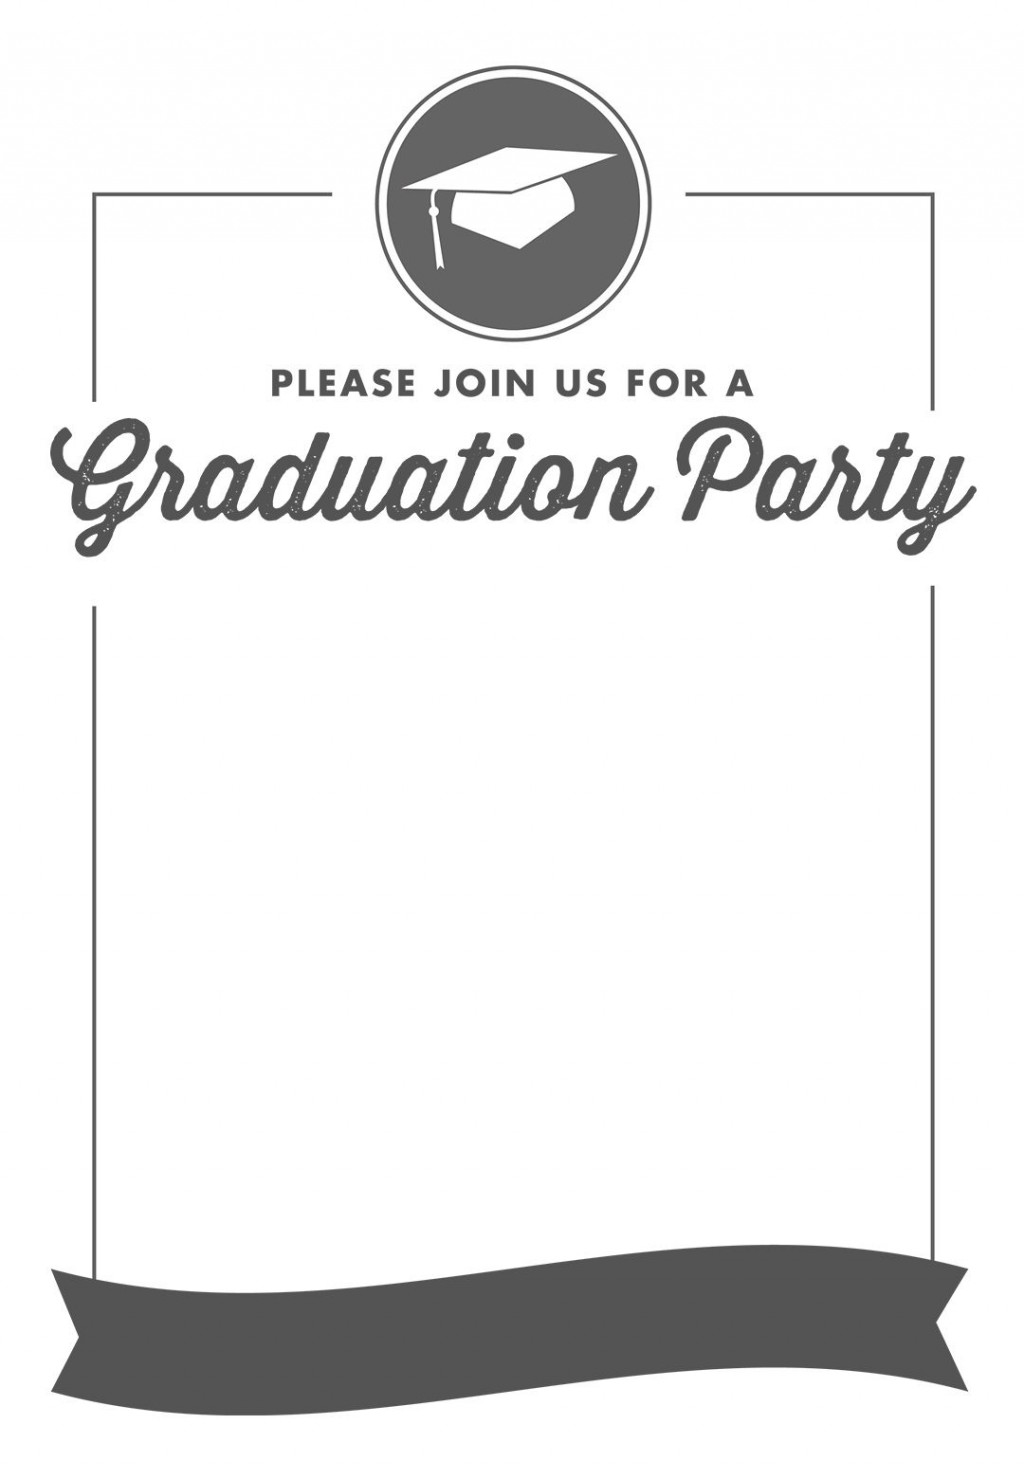 000 Sensational Graduation Party Invitation Template Example  Microsoft Word 4 Per PageLarge